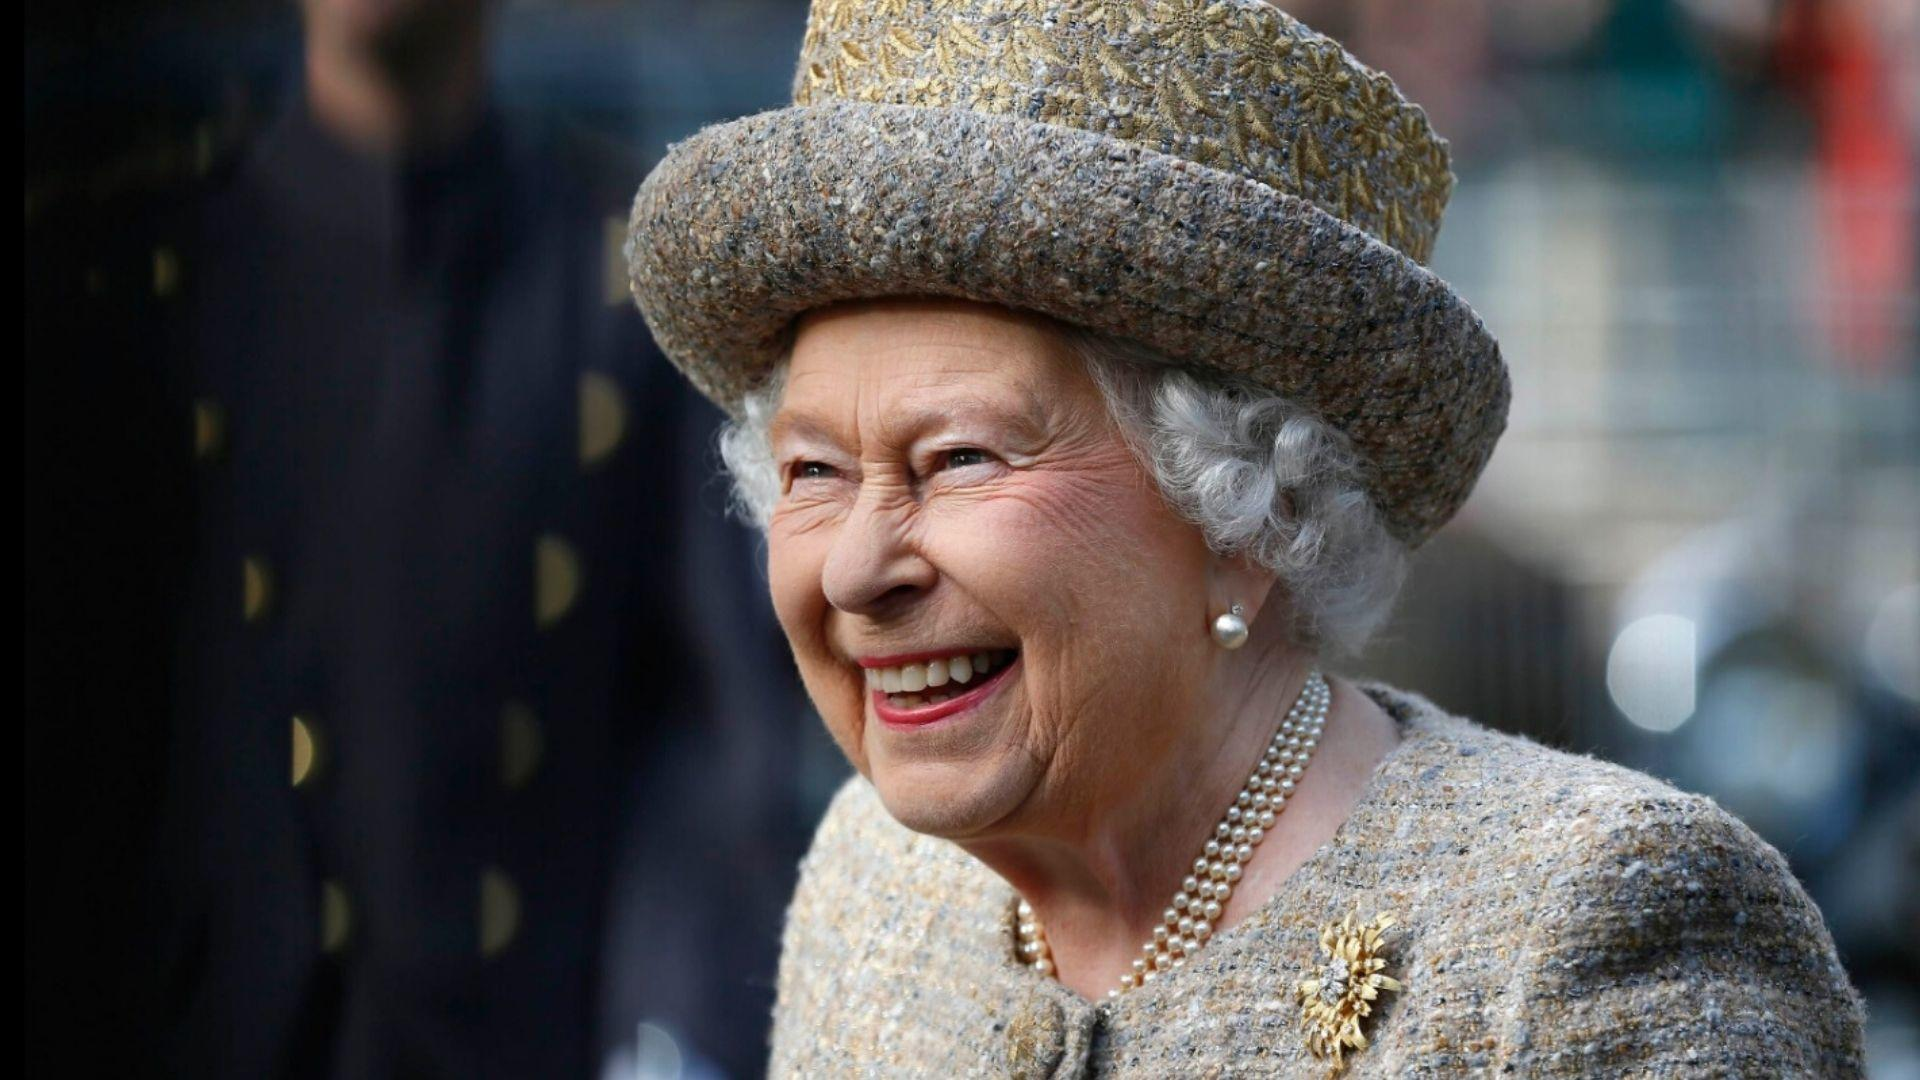 Looking For A Job? Queen Elizabeth Is Hiring